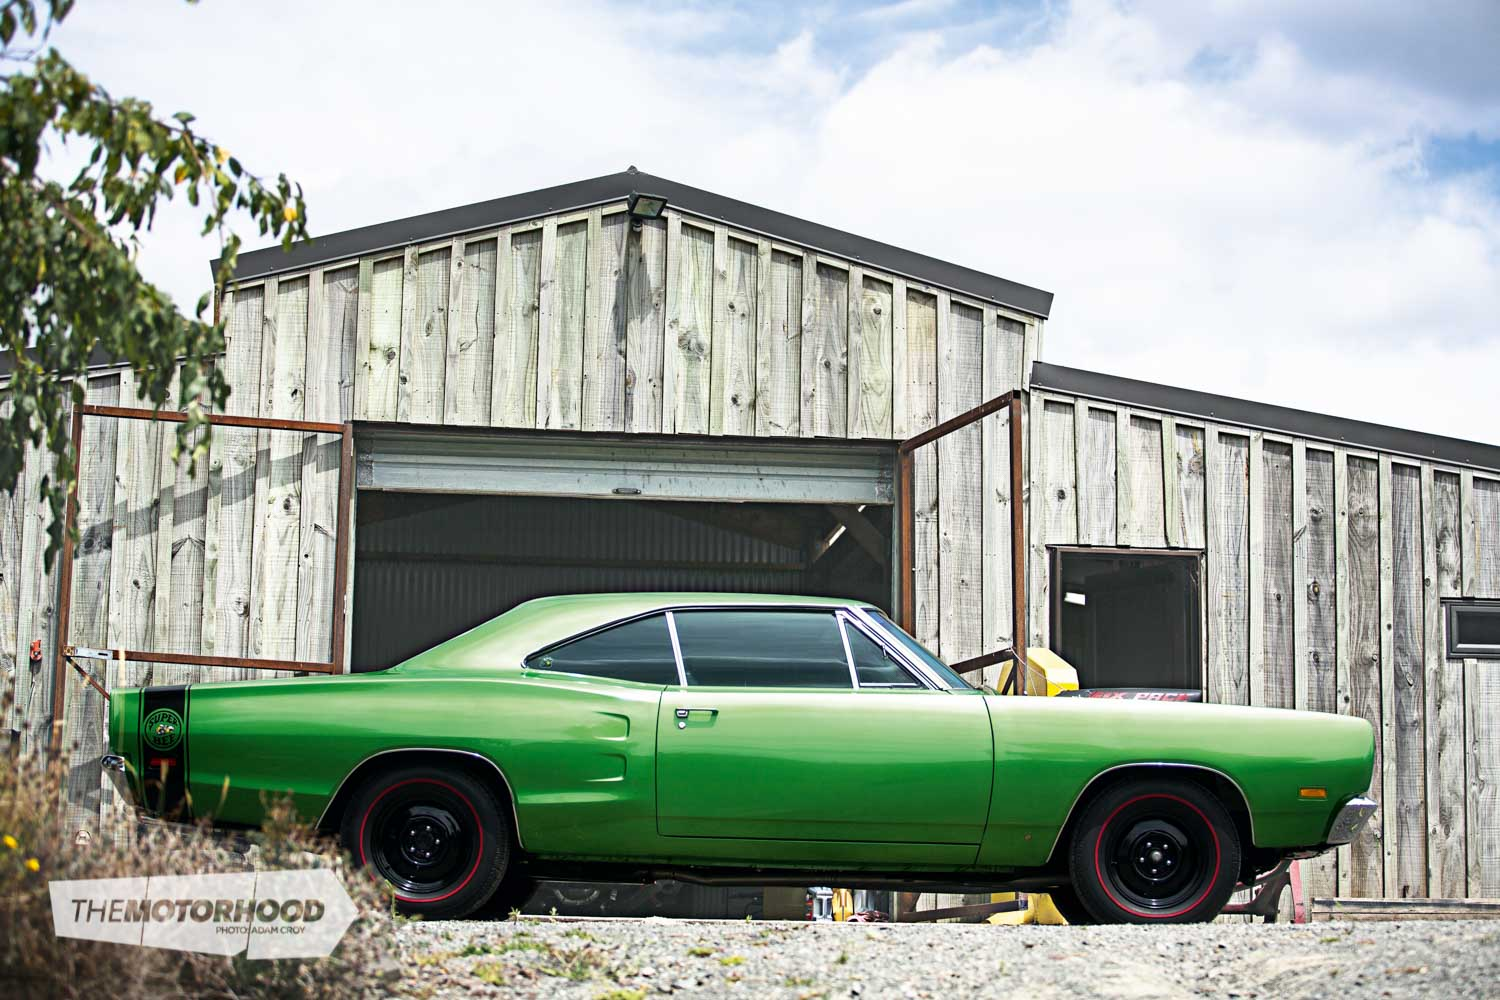 It stings like a bee: take a look at this 1969 Dodge Super